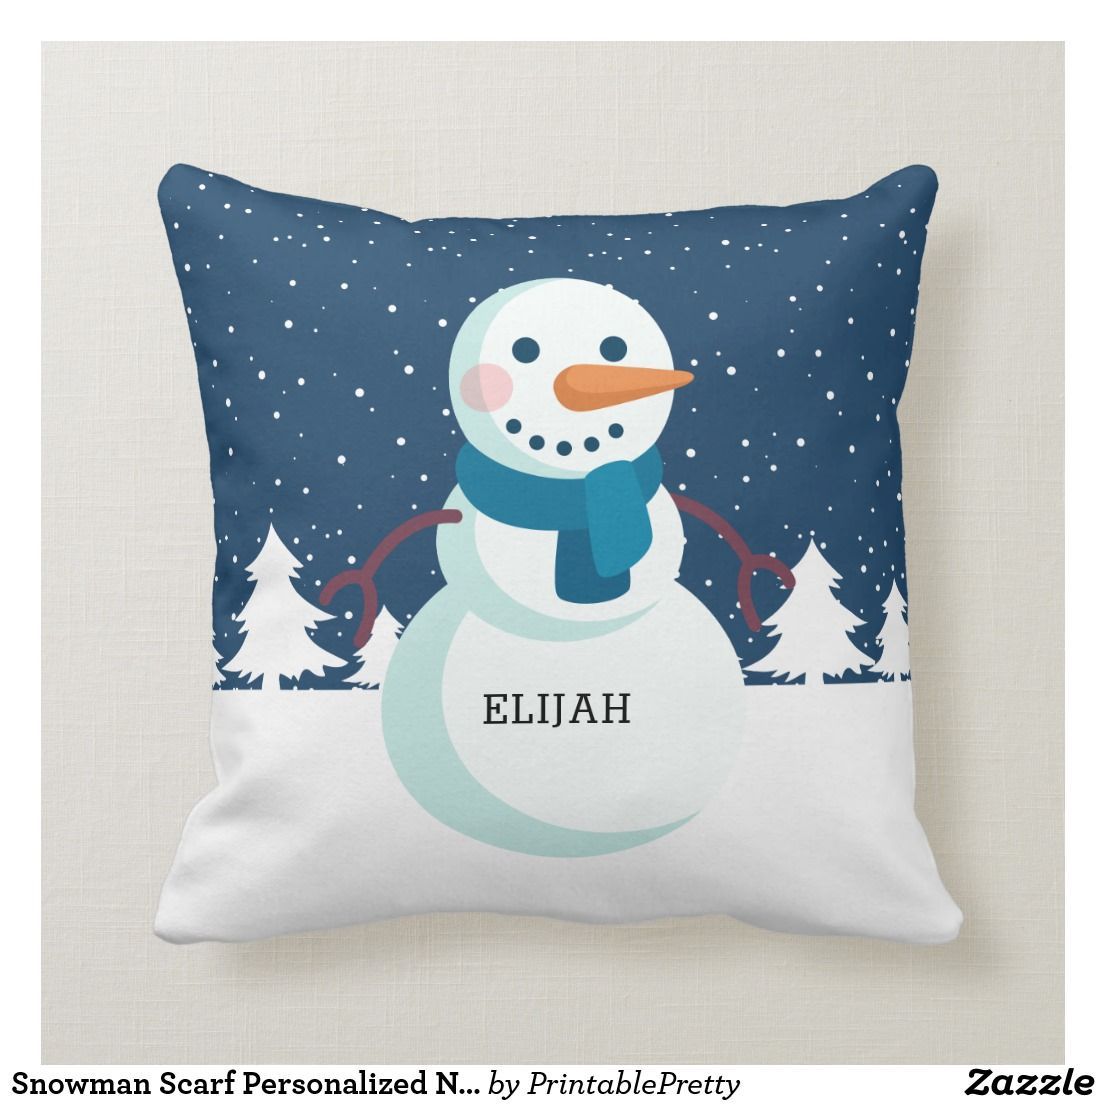 Snowman Scarf Personalized Name Christmas Holiday Throw Pillow Zazzle Com Holiday Throw Pillow Throw Pillows Christmas Throw Pillows